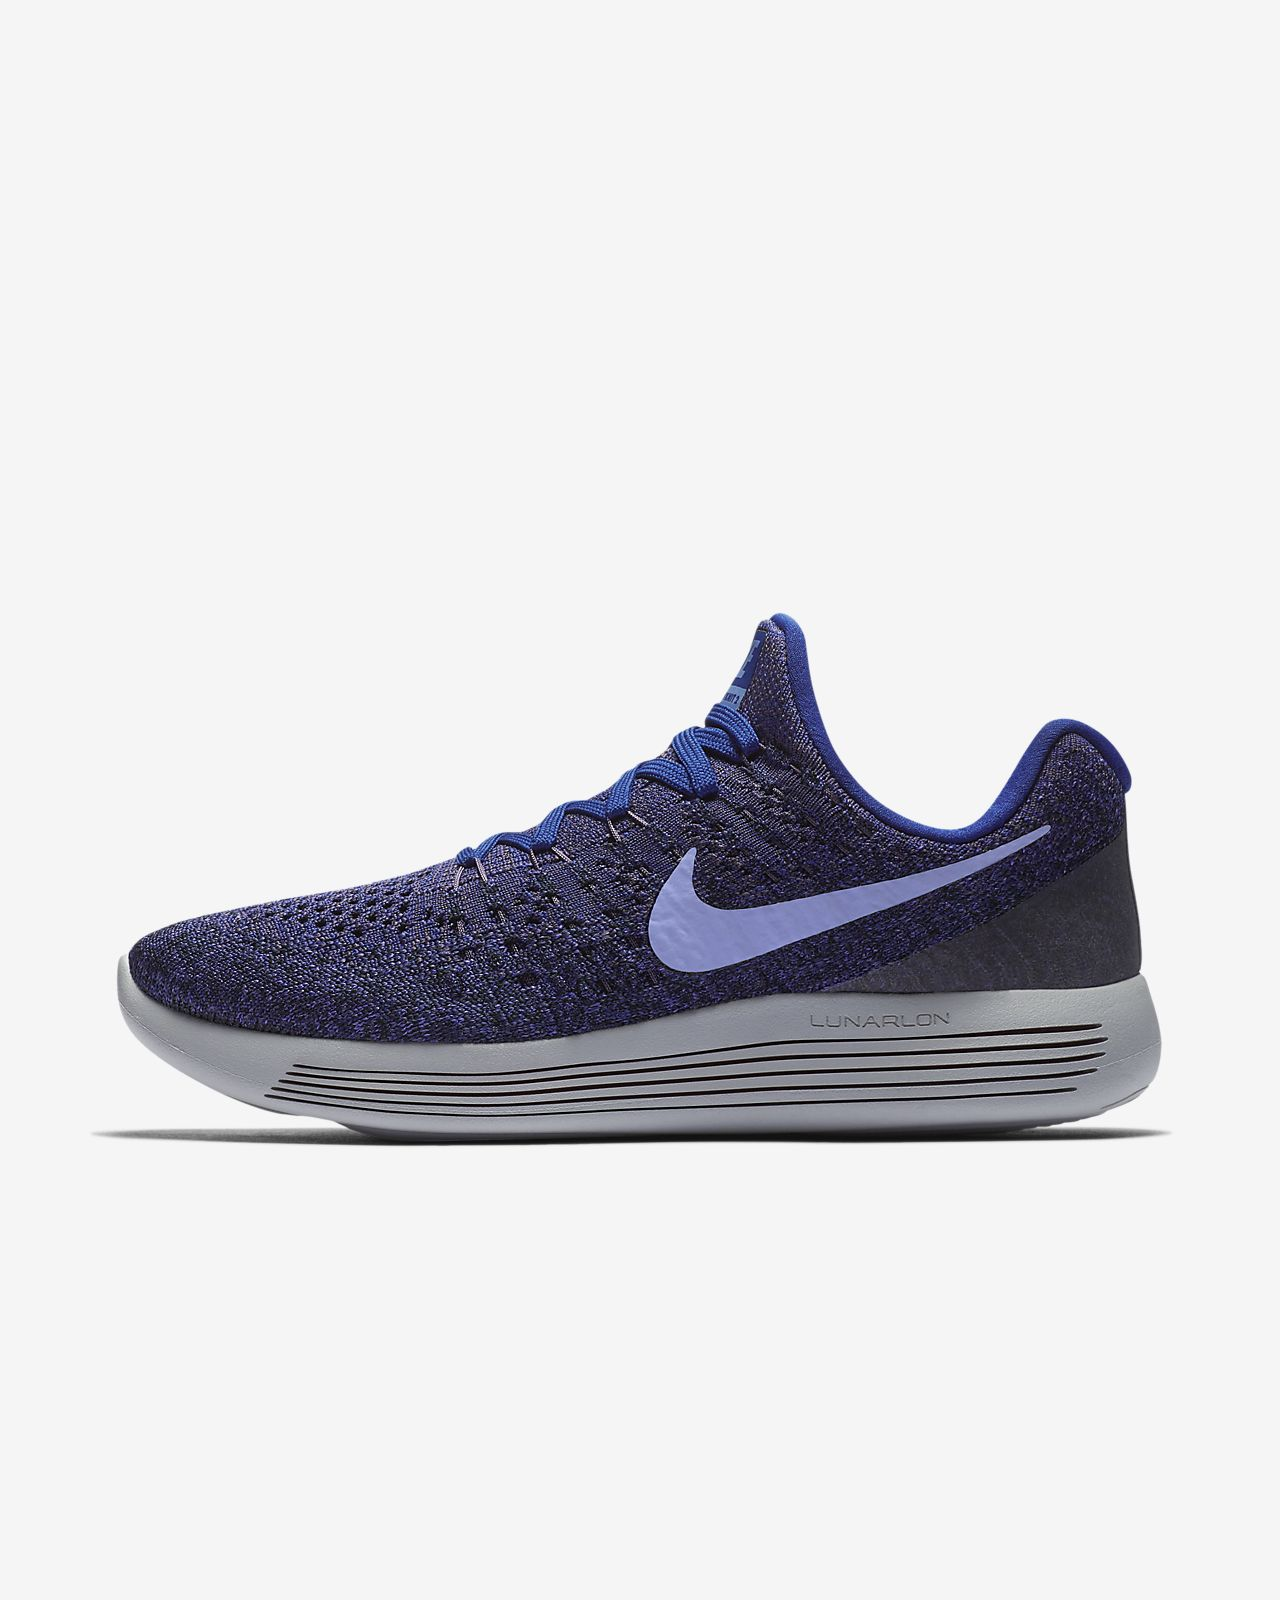 outlet store e63dc 09199 Nike LunarEpic Low Flyknit 2